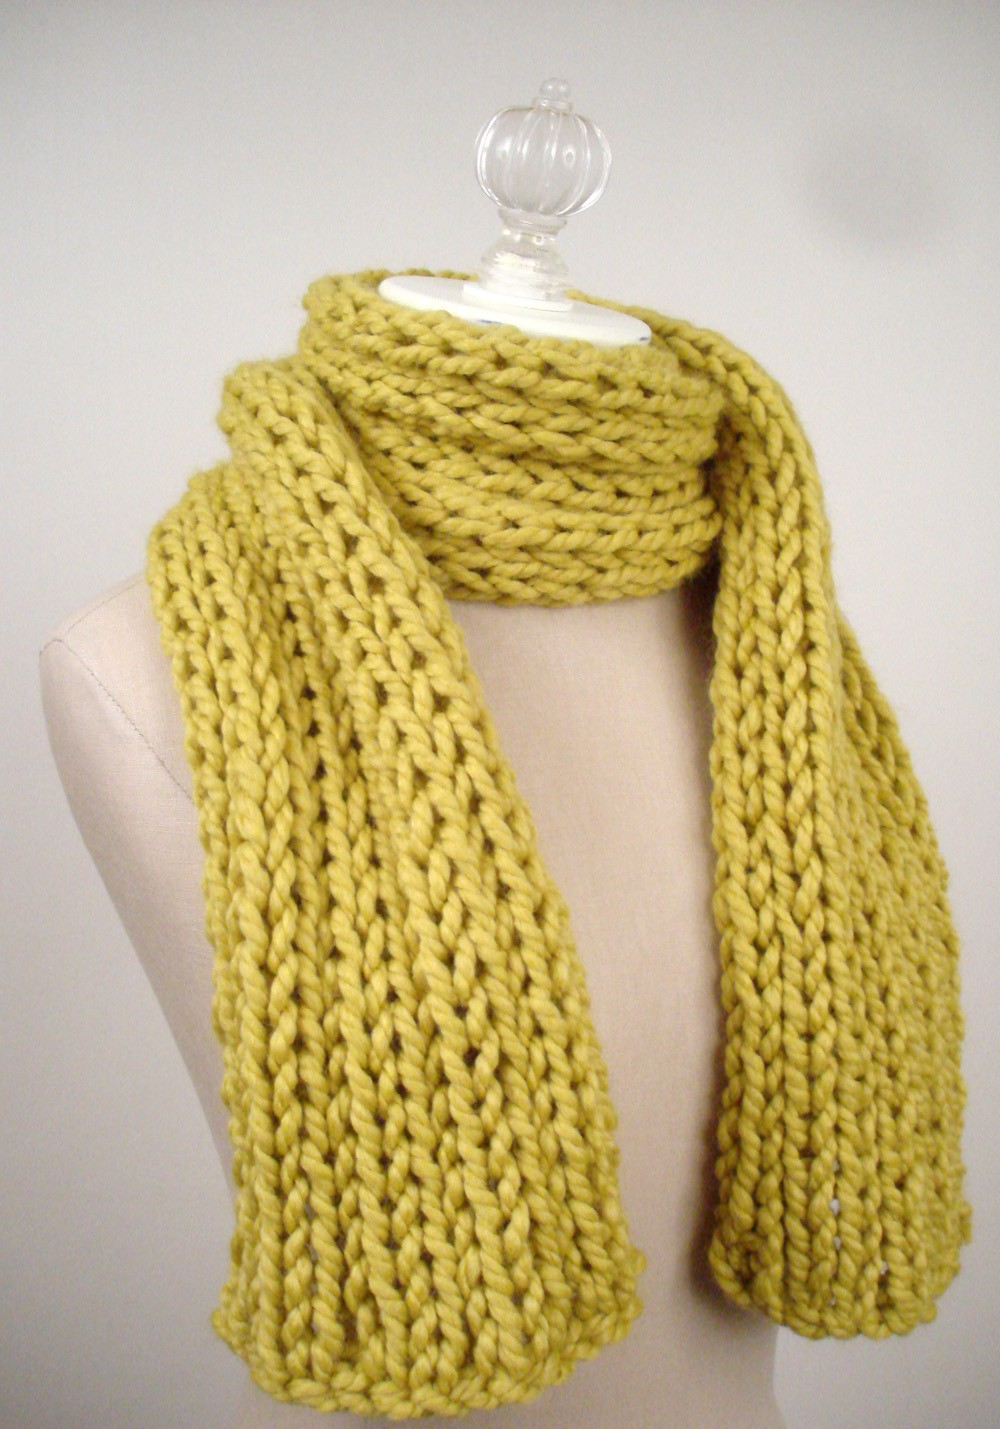 Knitting Pattern Of Scarf : EASY KNIT SCARF PATTERNS   Free Patterns